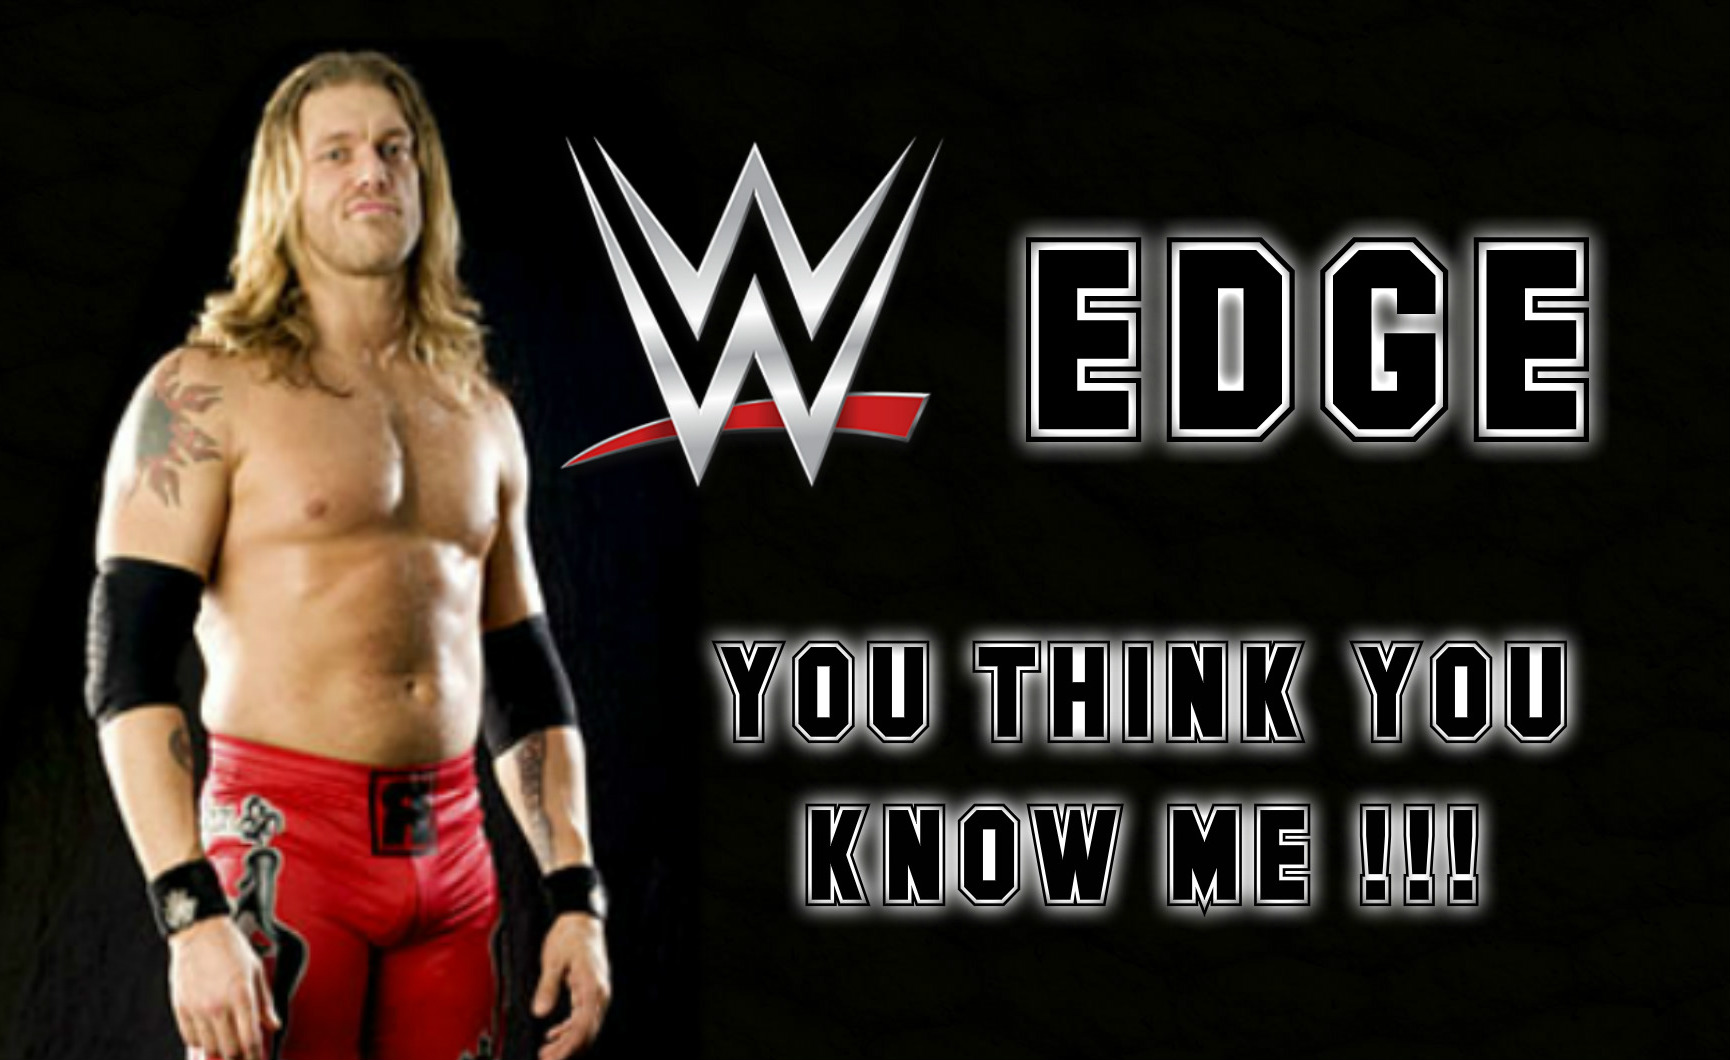 Nonton Film WWE Edge You Think You Know Me WD20 3rd April (2017) Subtitle Indonesia Streaming Movie Download